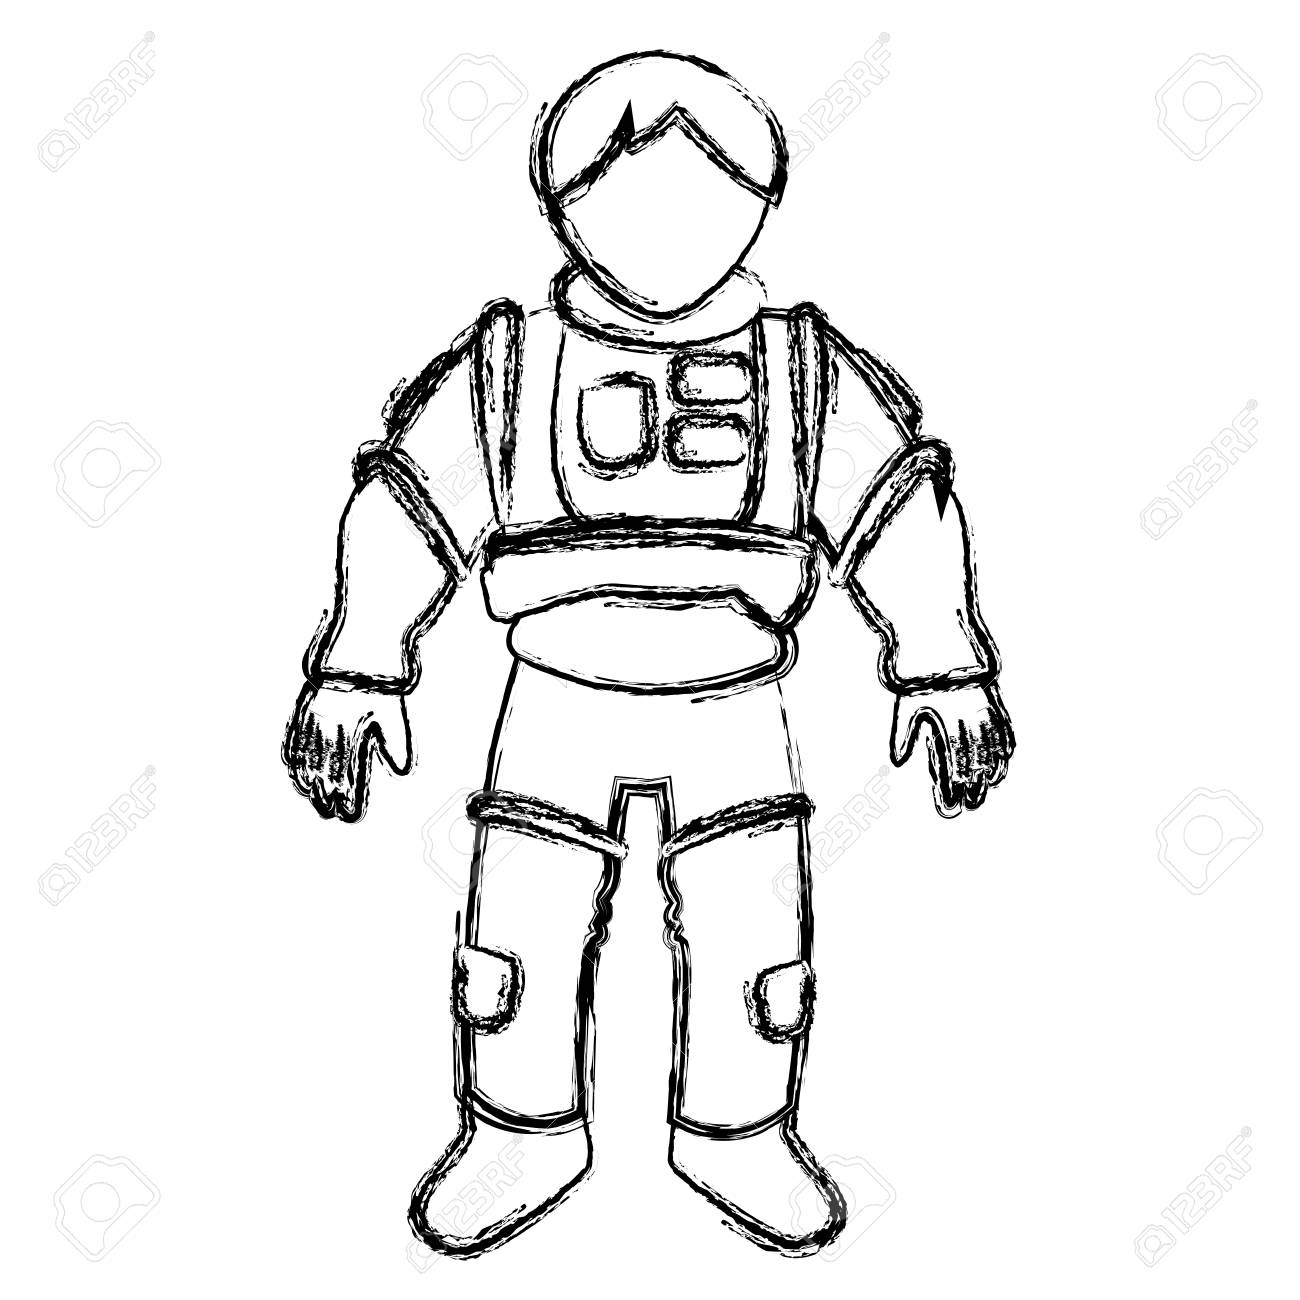 Astronaut Space Suit People Science Astronomy On White Background Vector Illustration Stock